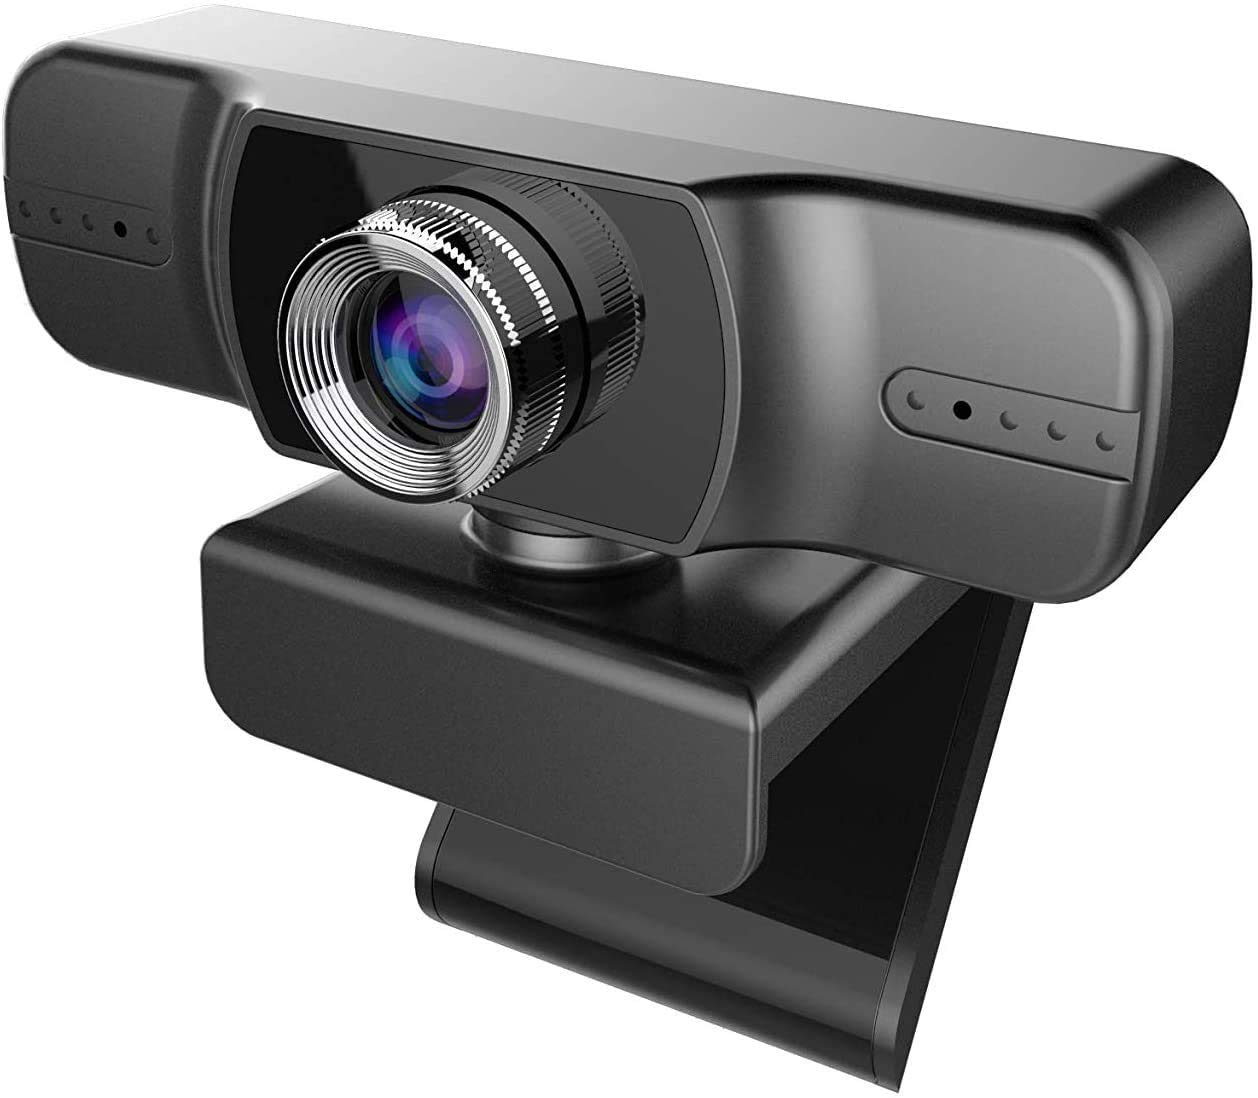 Webcam 1080P,FUVISION Computer Camera with Dual Microphone,Manual Focus Web Camera for Video Calling & Recording Video Conference/Online Teaching/Business Meeting and YouTube,Facebook,Zoom,Laptops